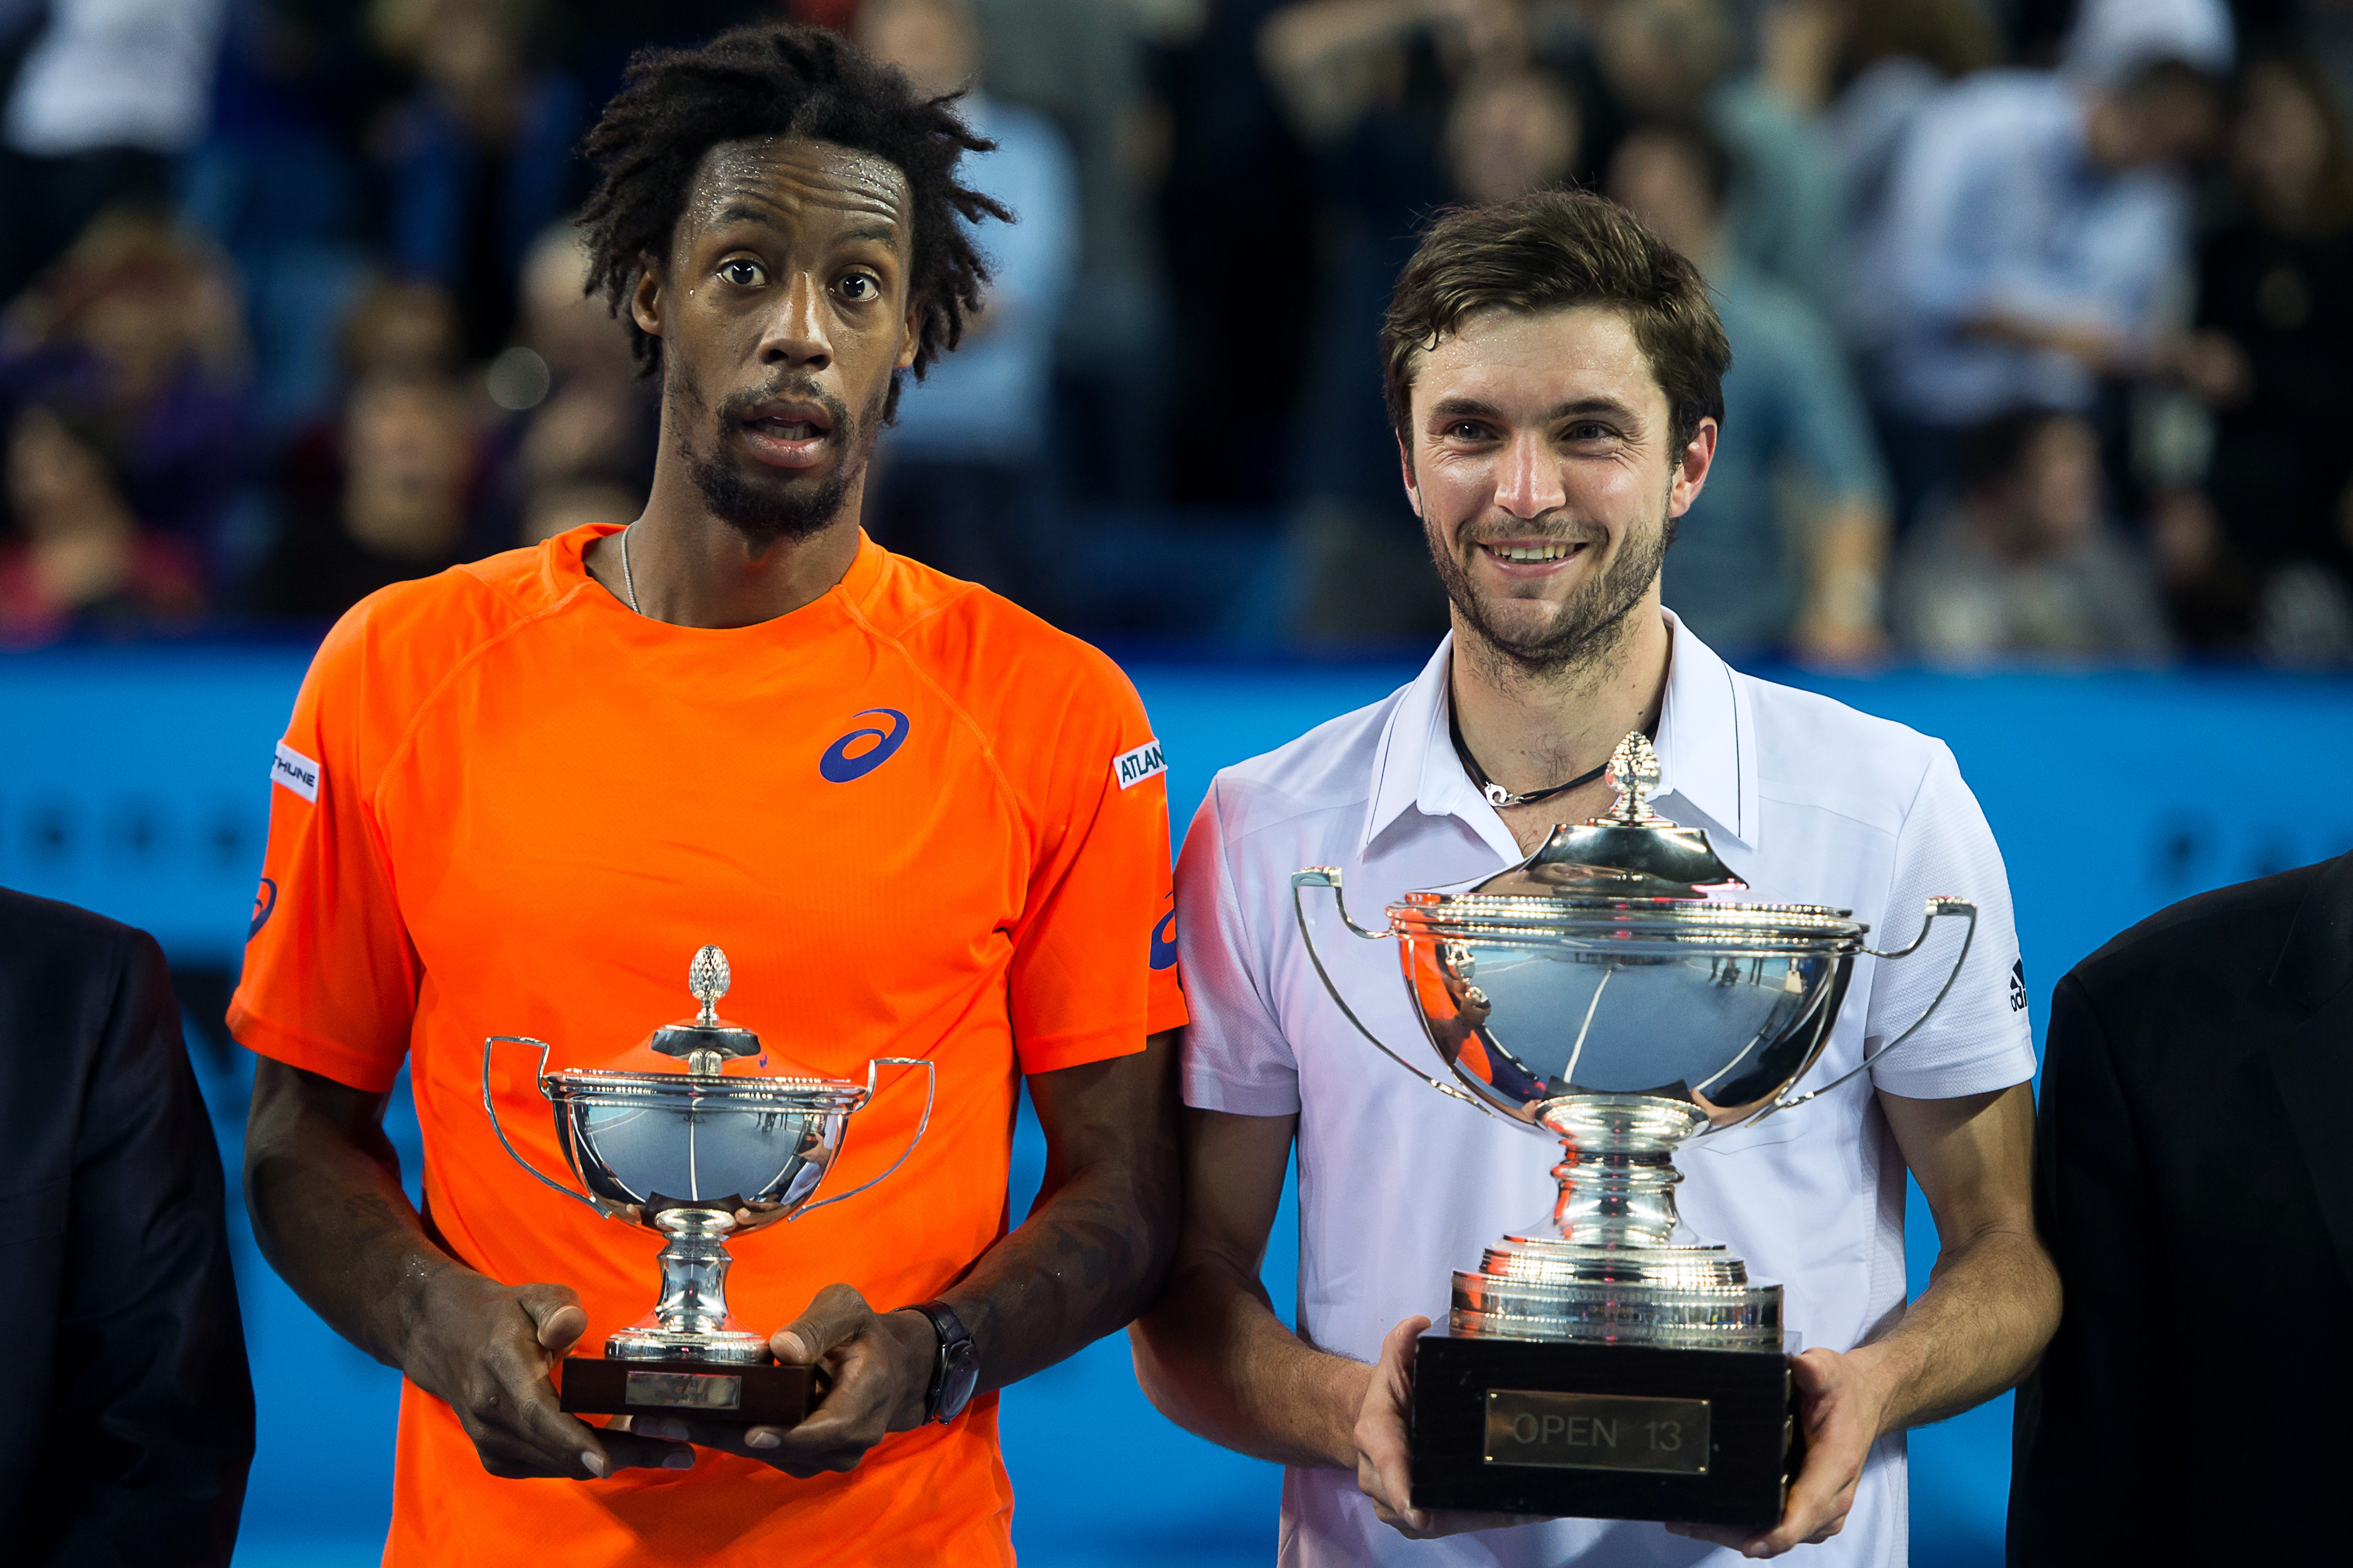 gilles simon with gael monfils showing trophies for atp marseille open 13 images 2015